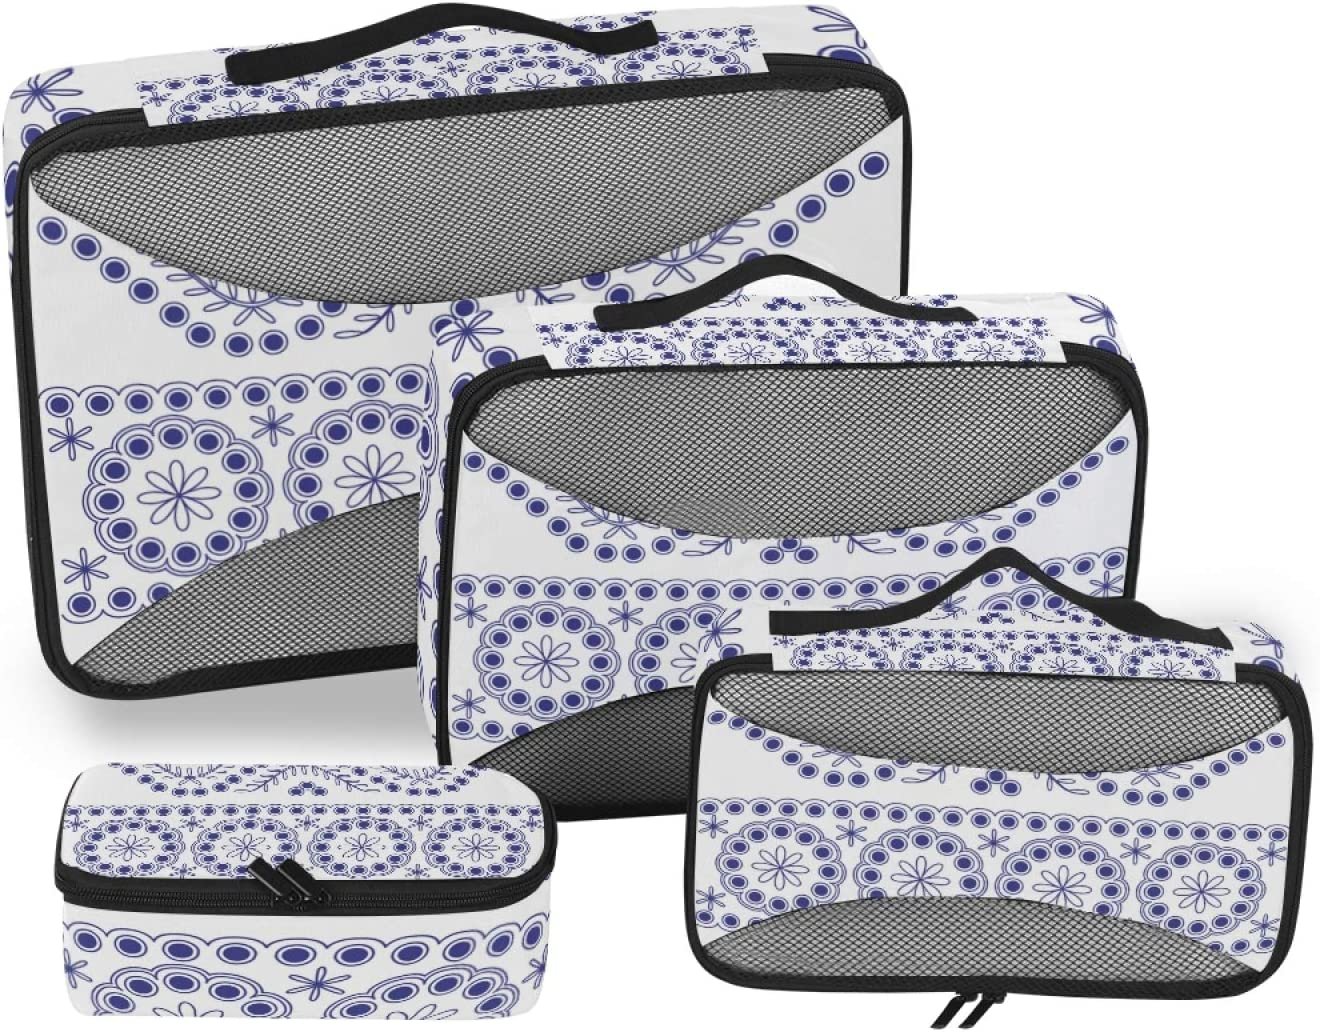 Luxury Floral Pattern Packing Cubes Animer and price revision 4-Pcs Accessories Organizer Travel